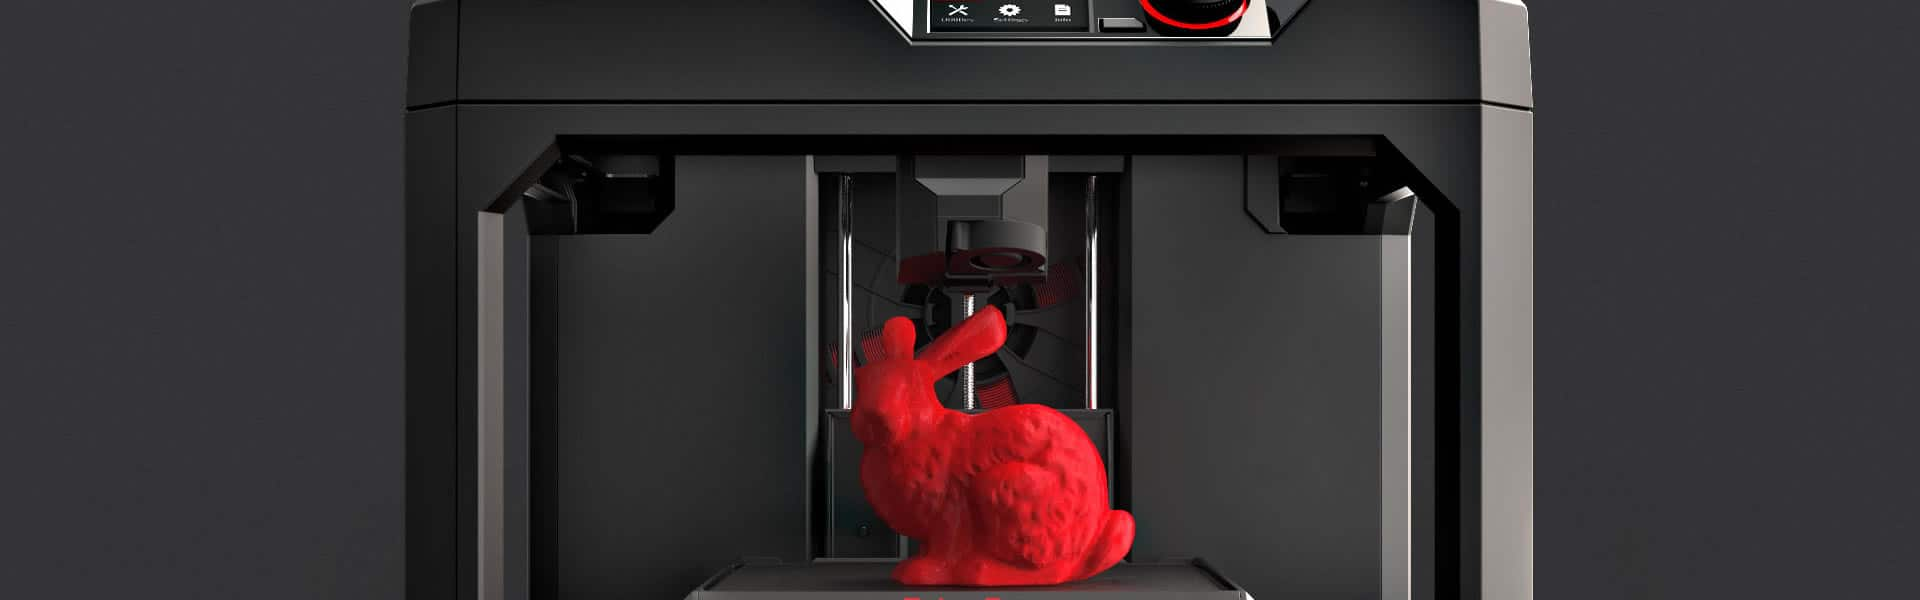 Best 3D Printer 2018 – Buying Guide and 3D Printer Reviews